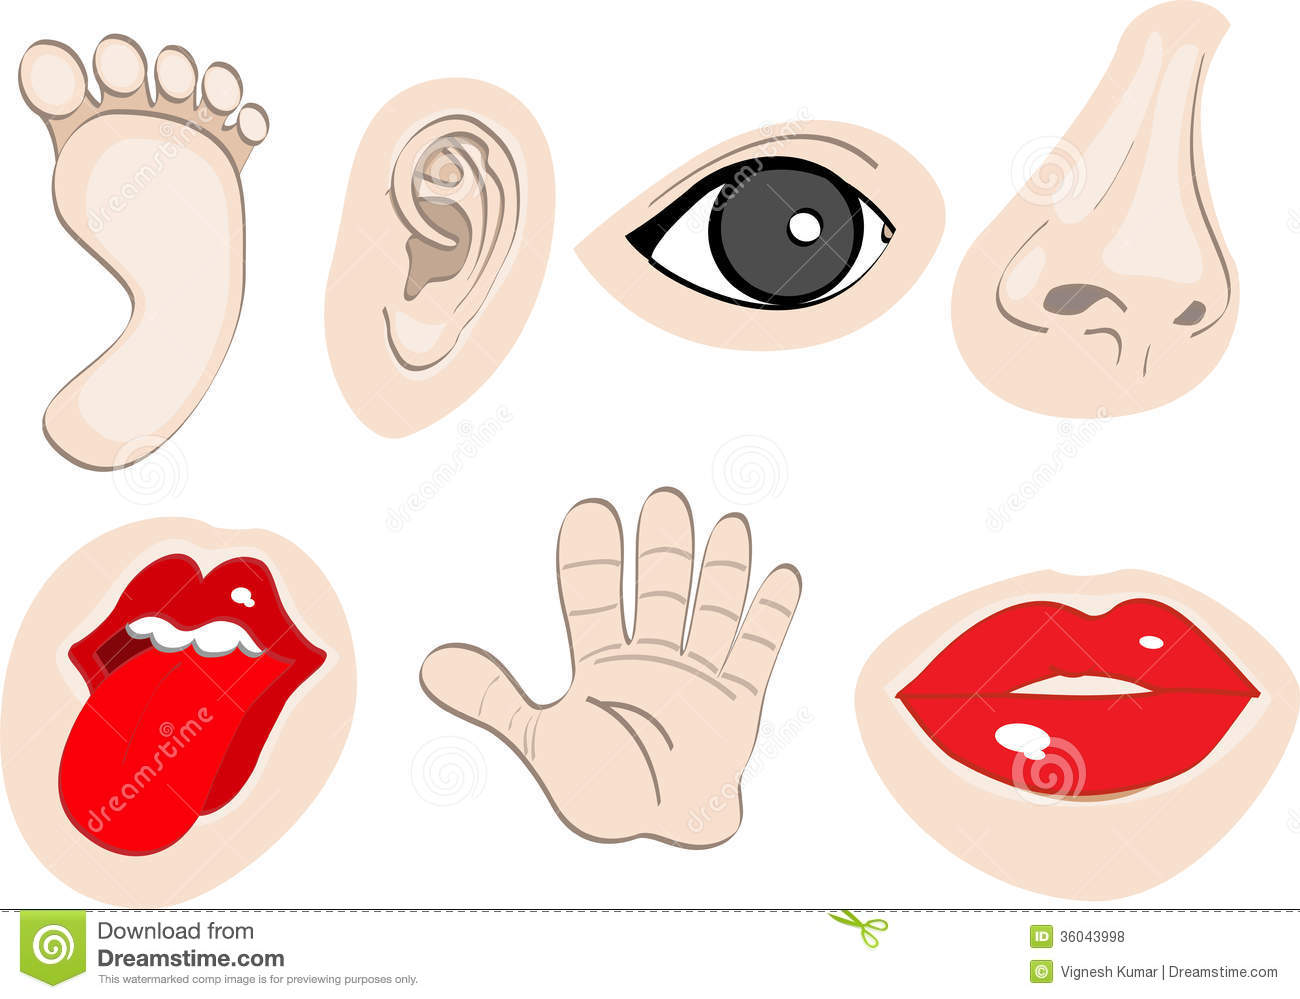 Parts of the body clipart - Clipground